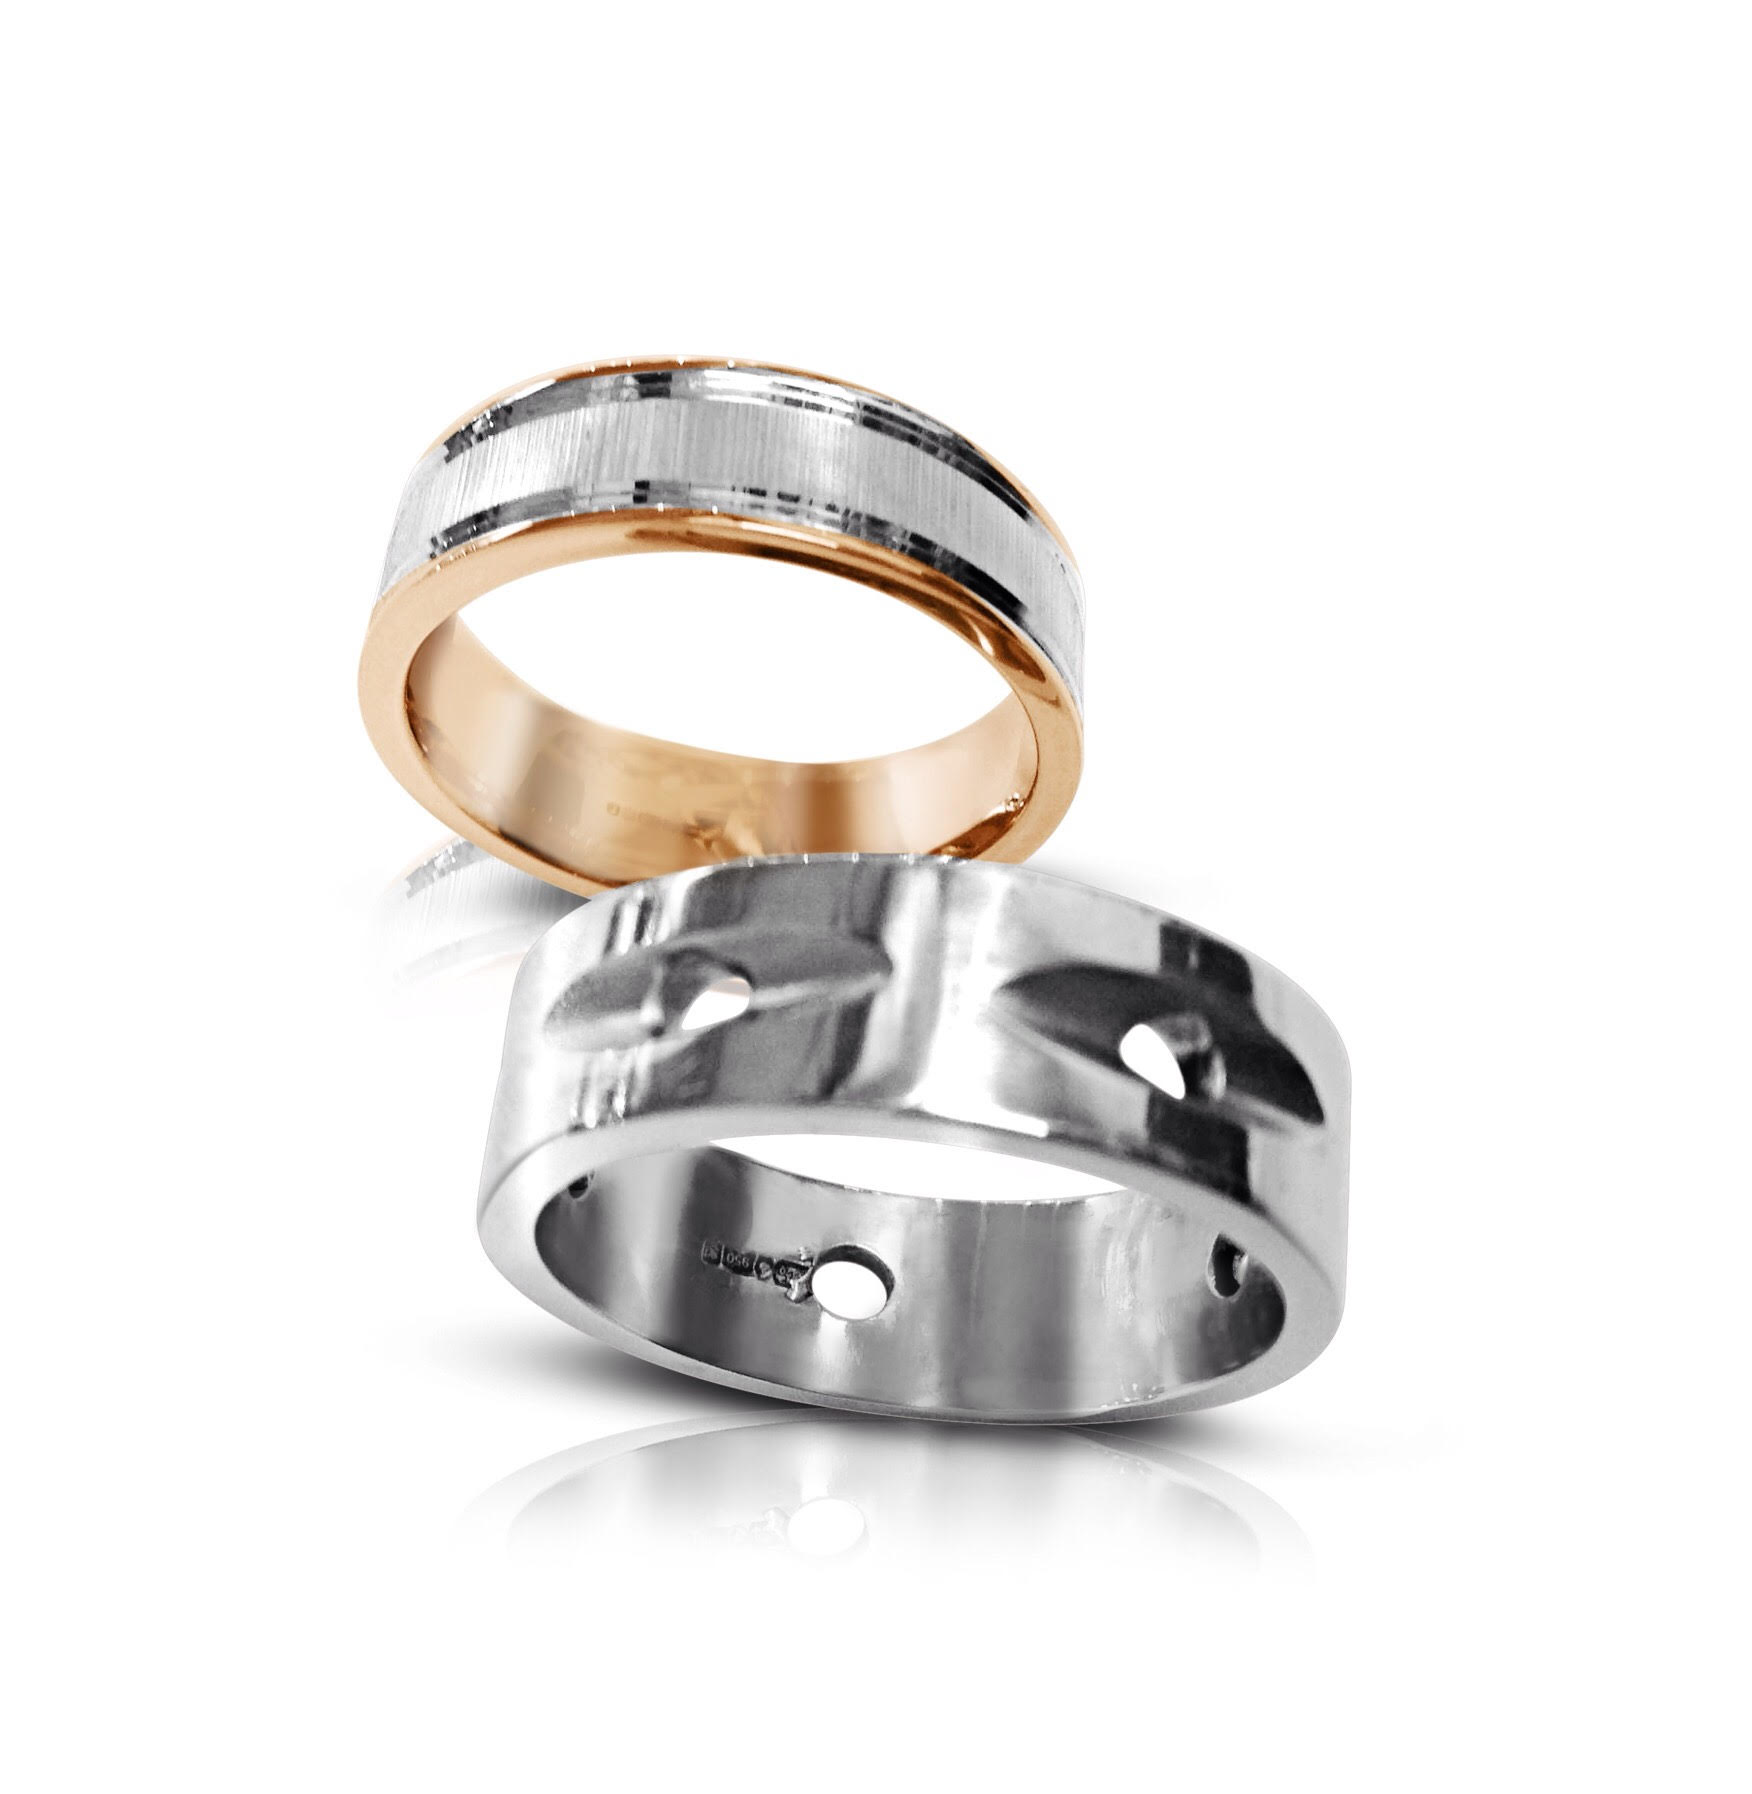 Polished platinum rings by Colette Hazelwood Contemporary Jewellery